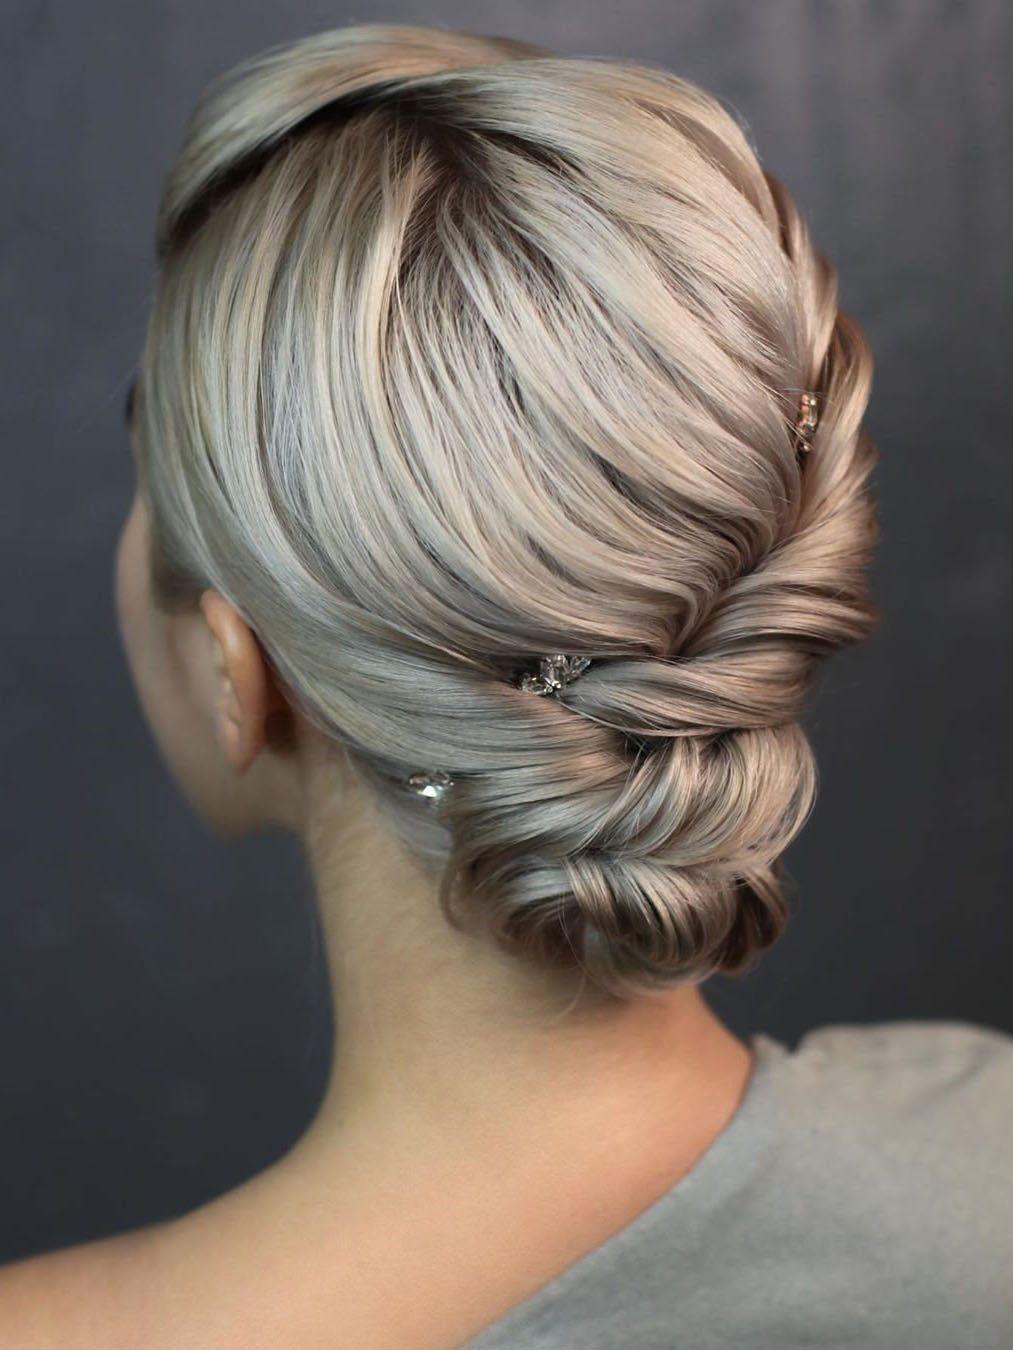 60 Elegant Christmas And New Year Eve Prom Hairstyles New Year S Eve Hair Hair Styles Prom Hairstyles For Long Hair